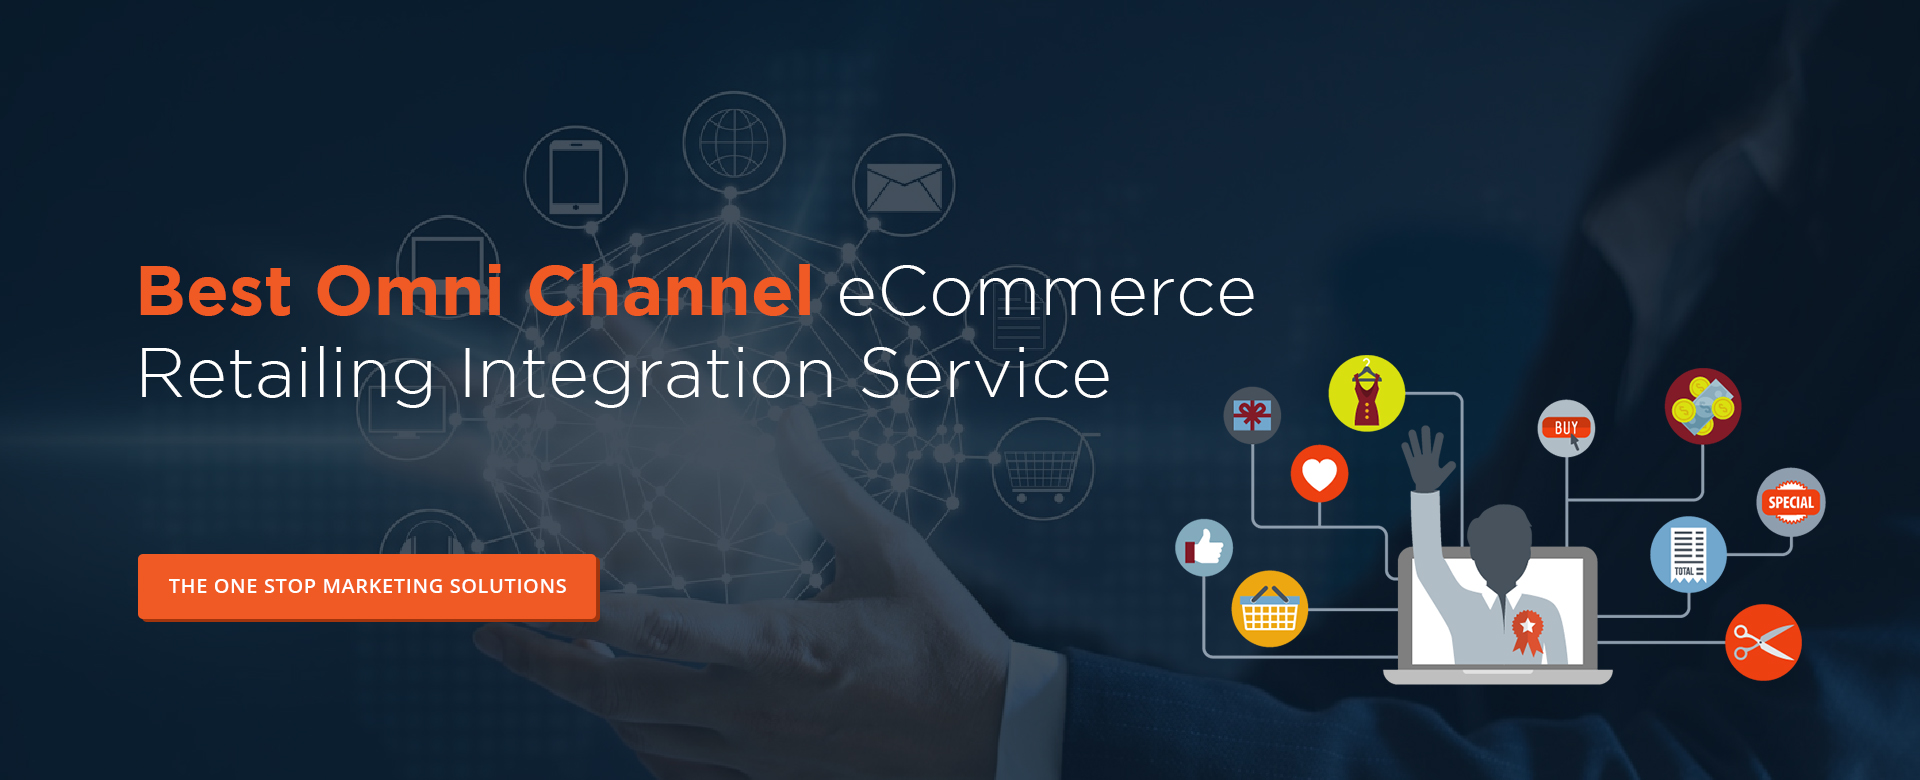 Omni Channel ECommerce Integration & Retailing